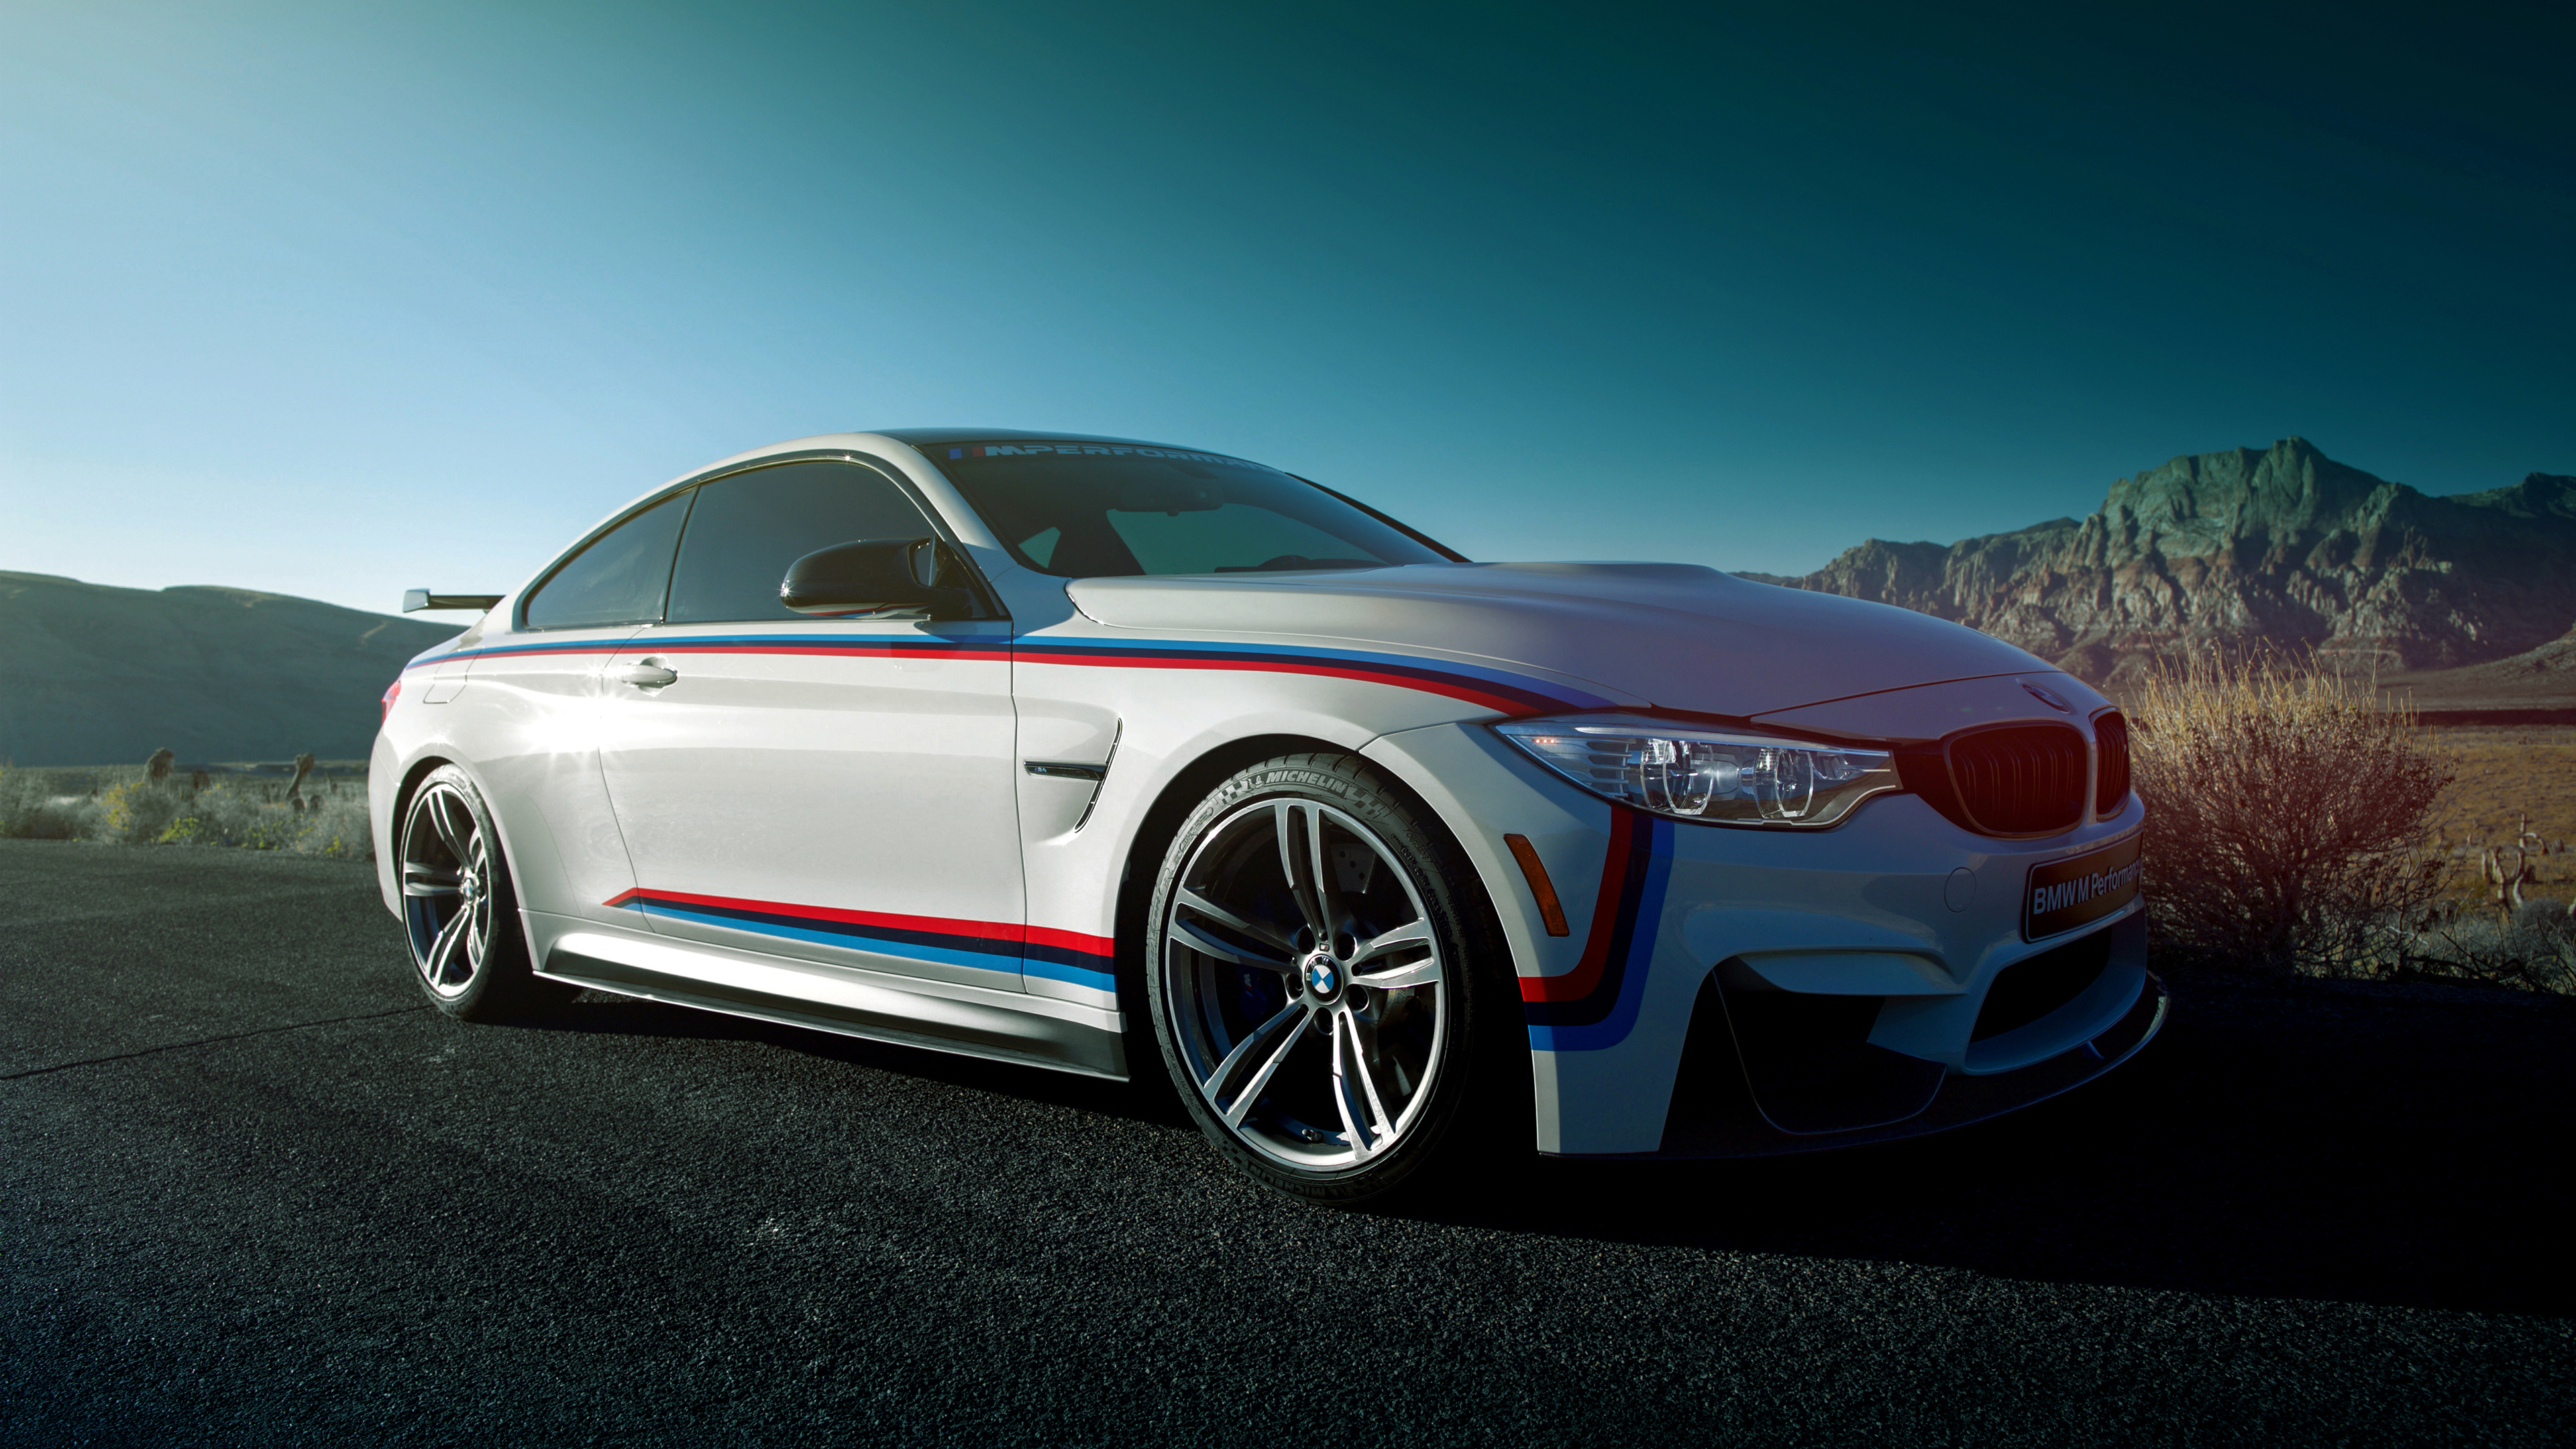 bmw m4 coupe m performance wallpaper hd car wallpapers id 6286. Black Bedroom Furniture Sets. Home Design Ideas